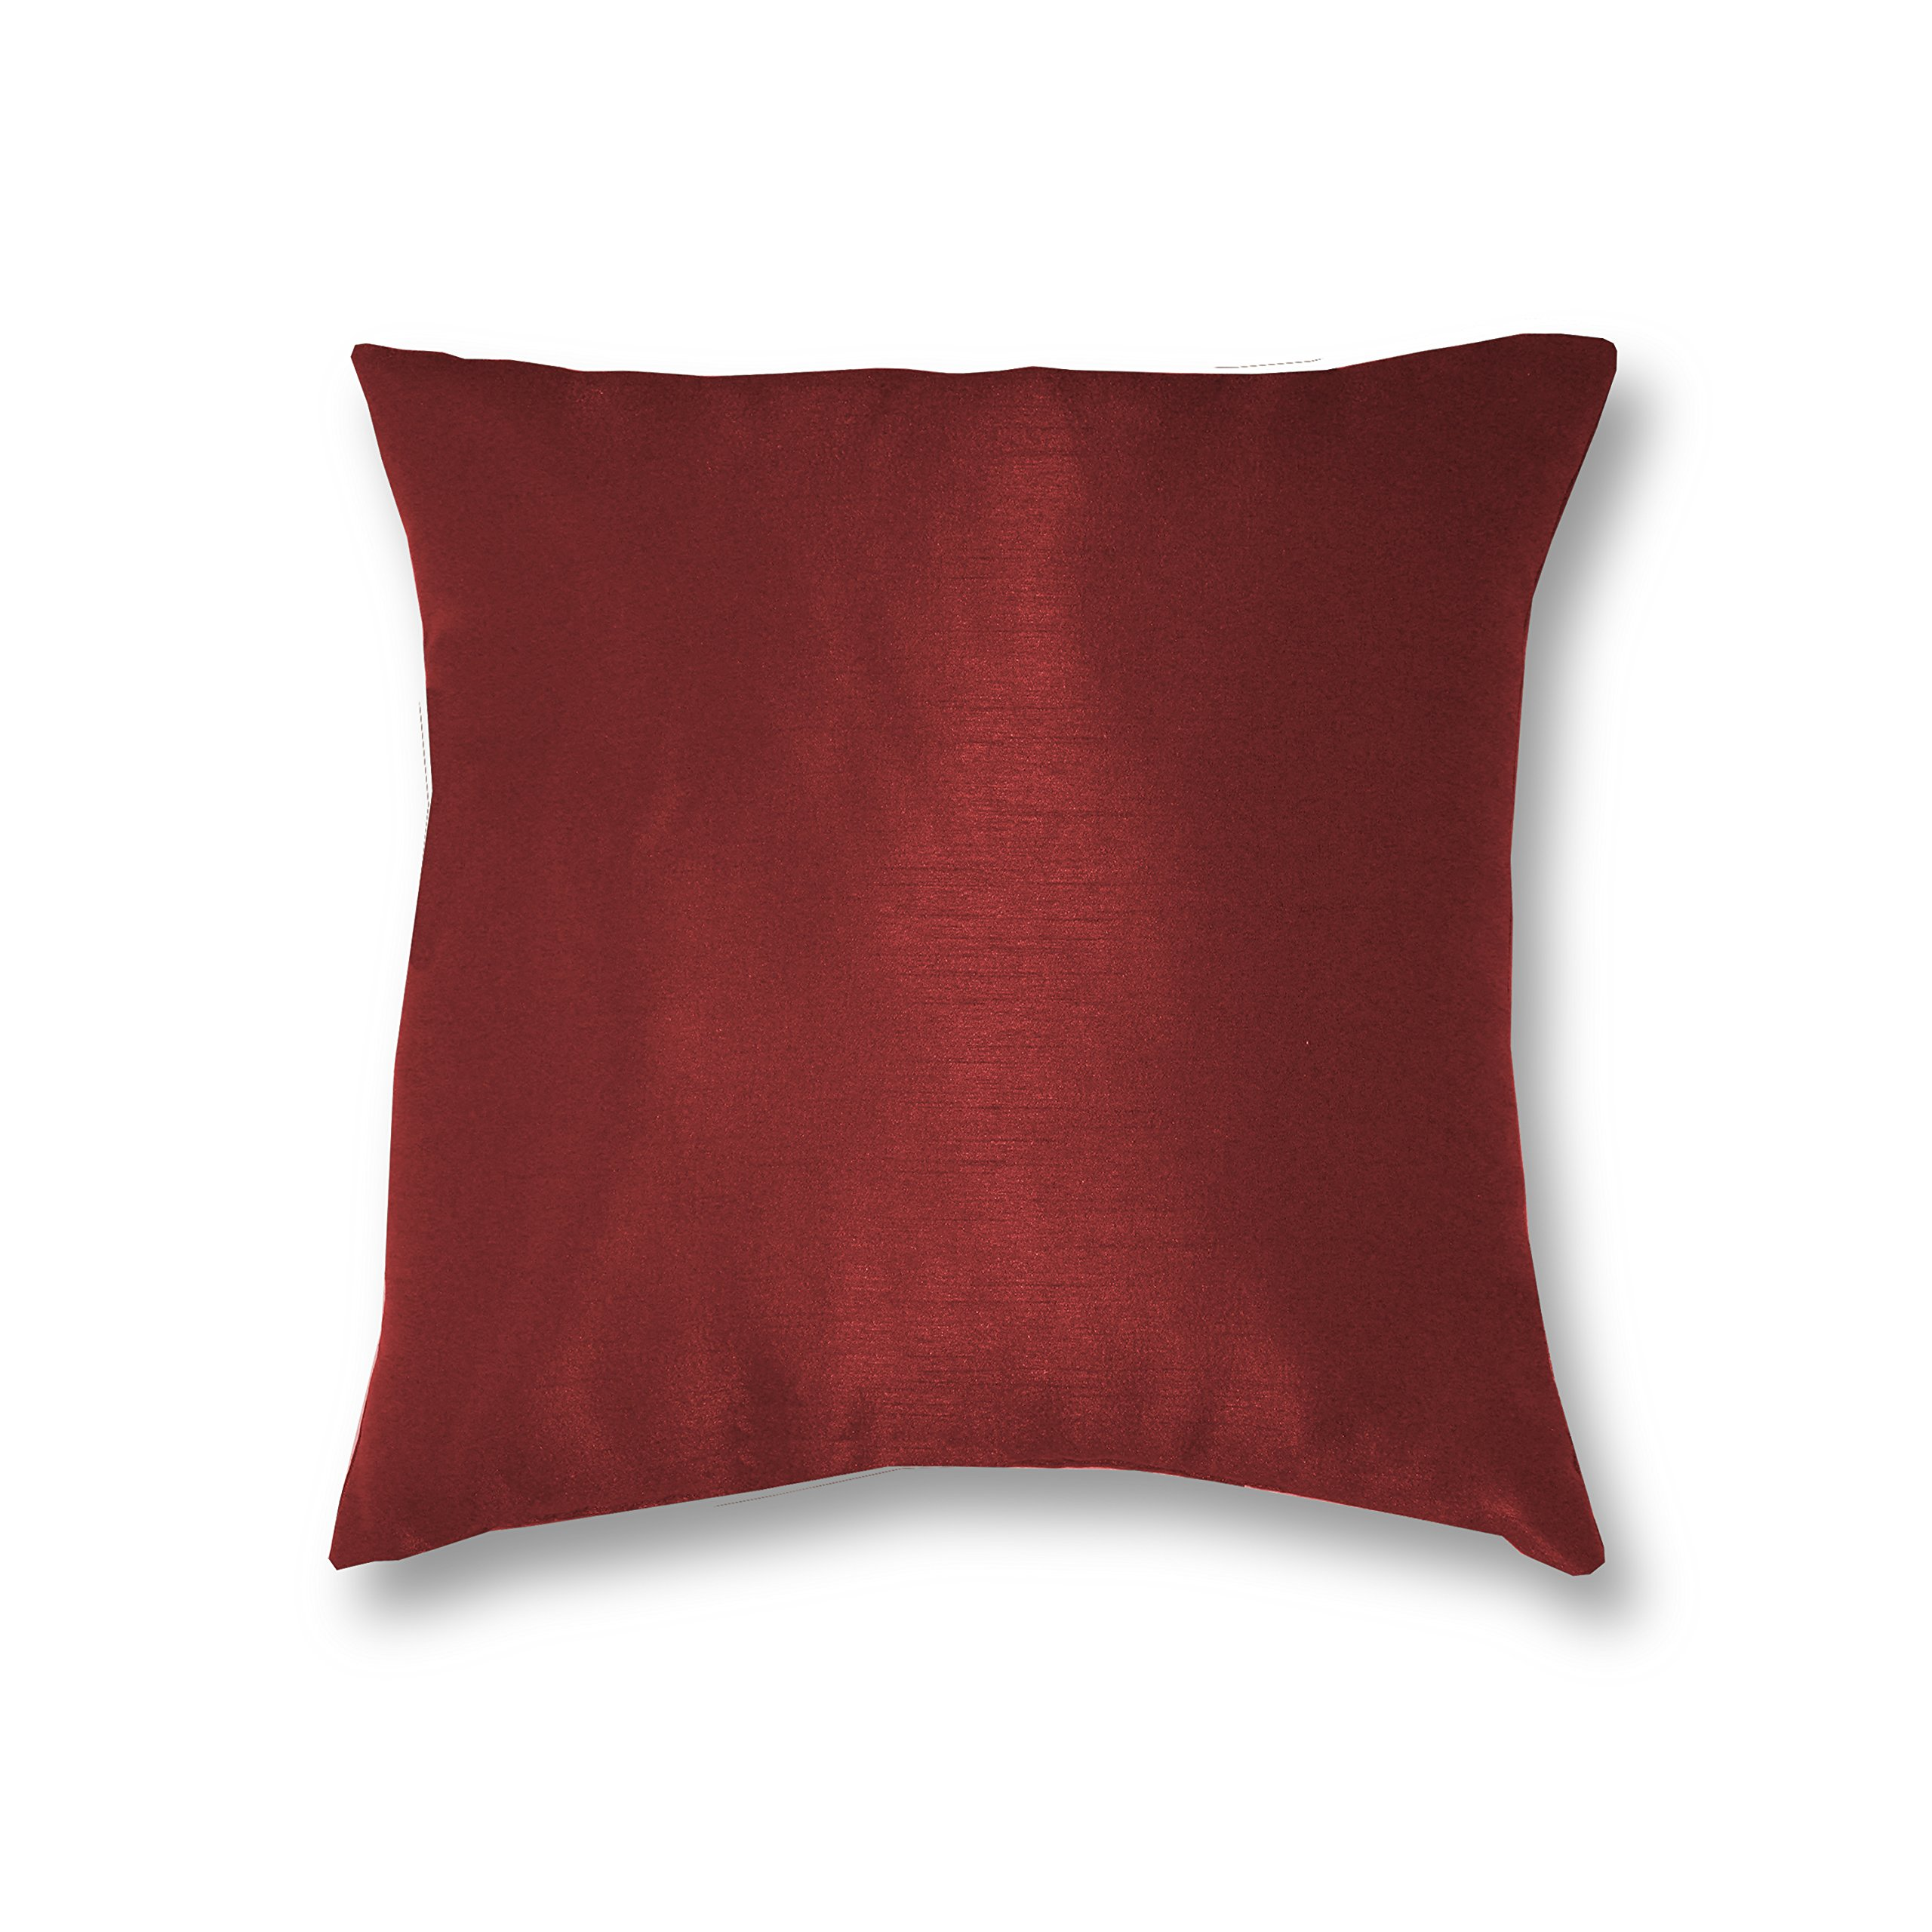 Elrene Home Fashions 026865880199 Decorative Solid Regal Couch/Sofa/Bed Cushion Pillow, 18'' x 18'', Rouge